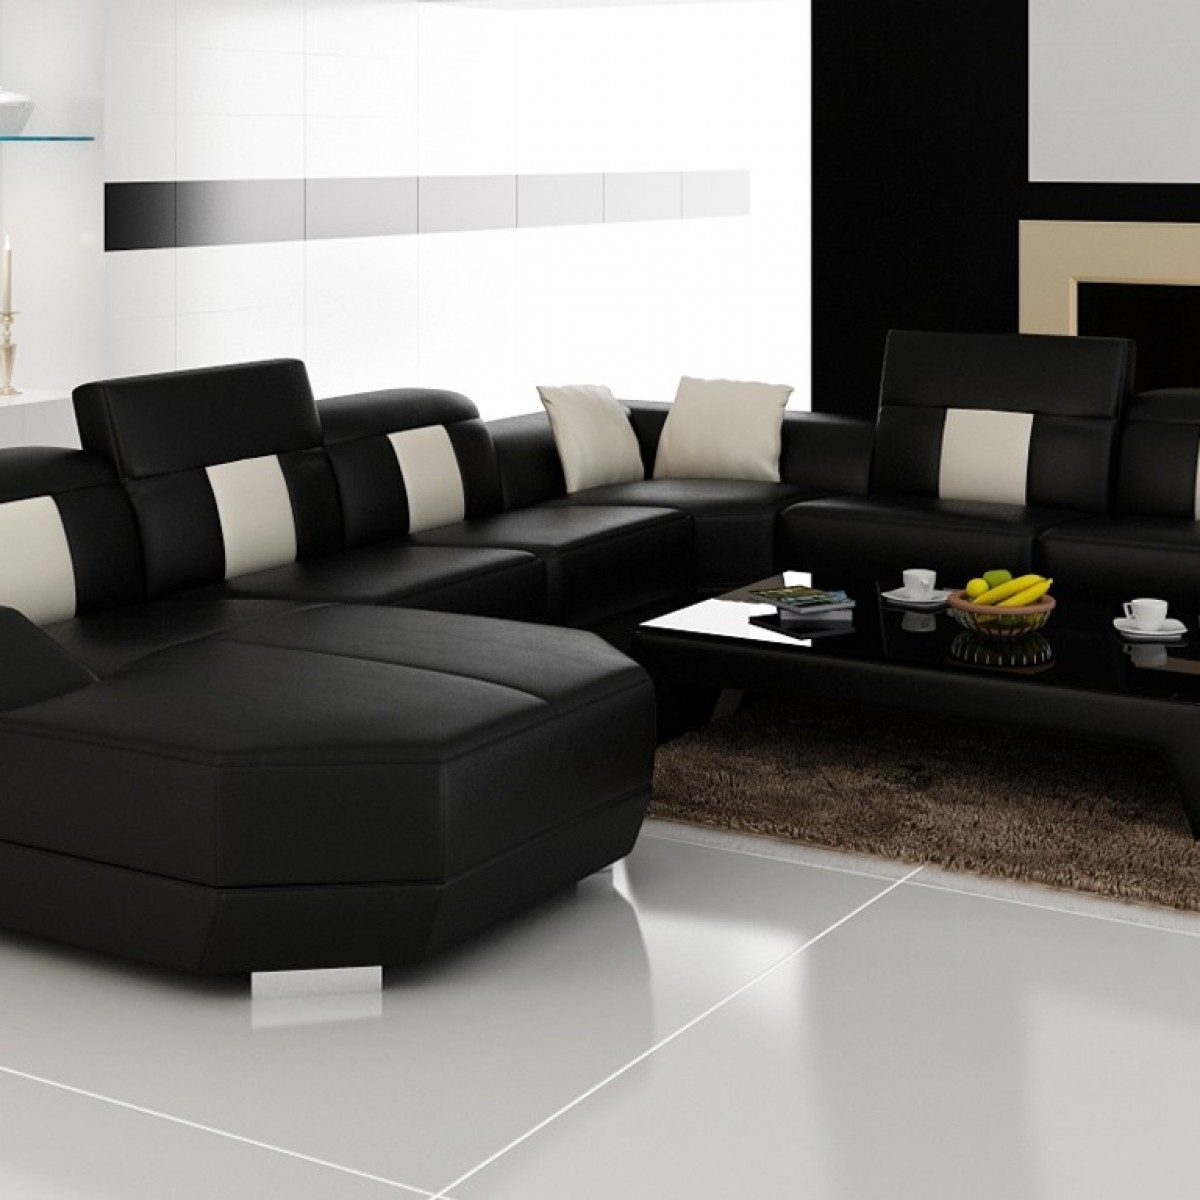 Adjustable Sectional Sofas With Queen Bed Intended For Well Known Furniture : Sectional Sofa Queen Sleeper Corner Couch Liverpool (View 4 of 15)